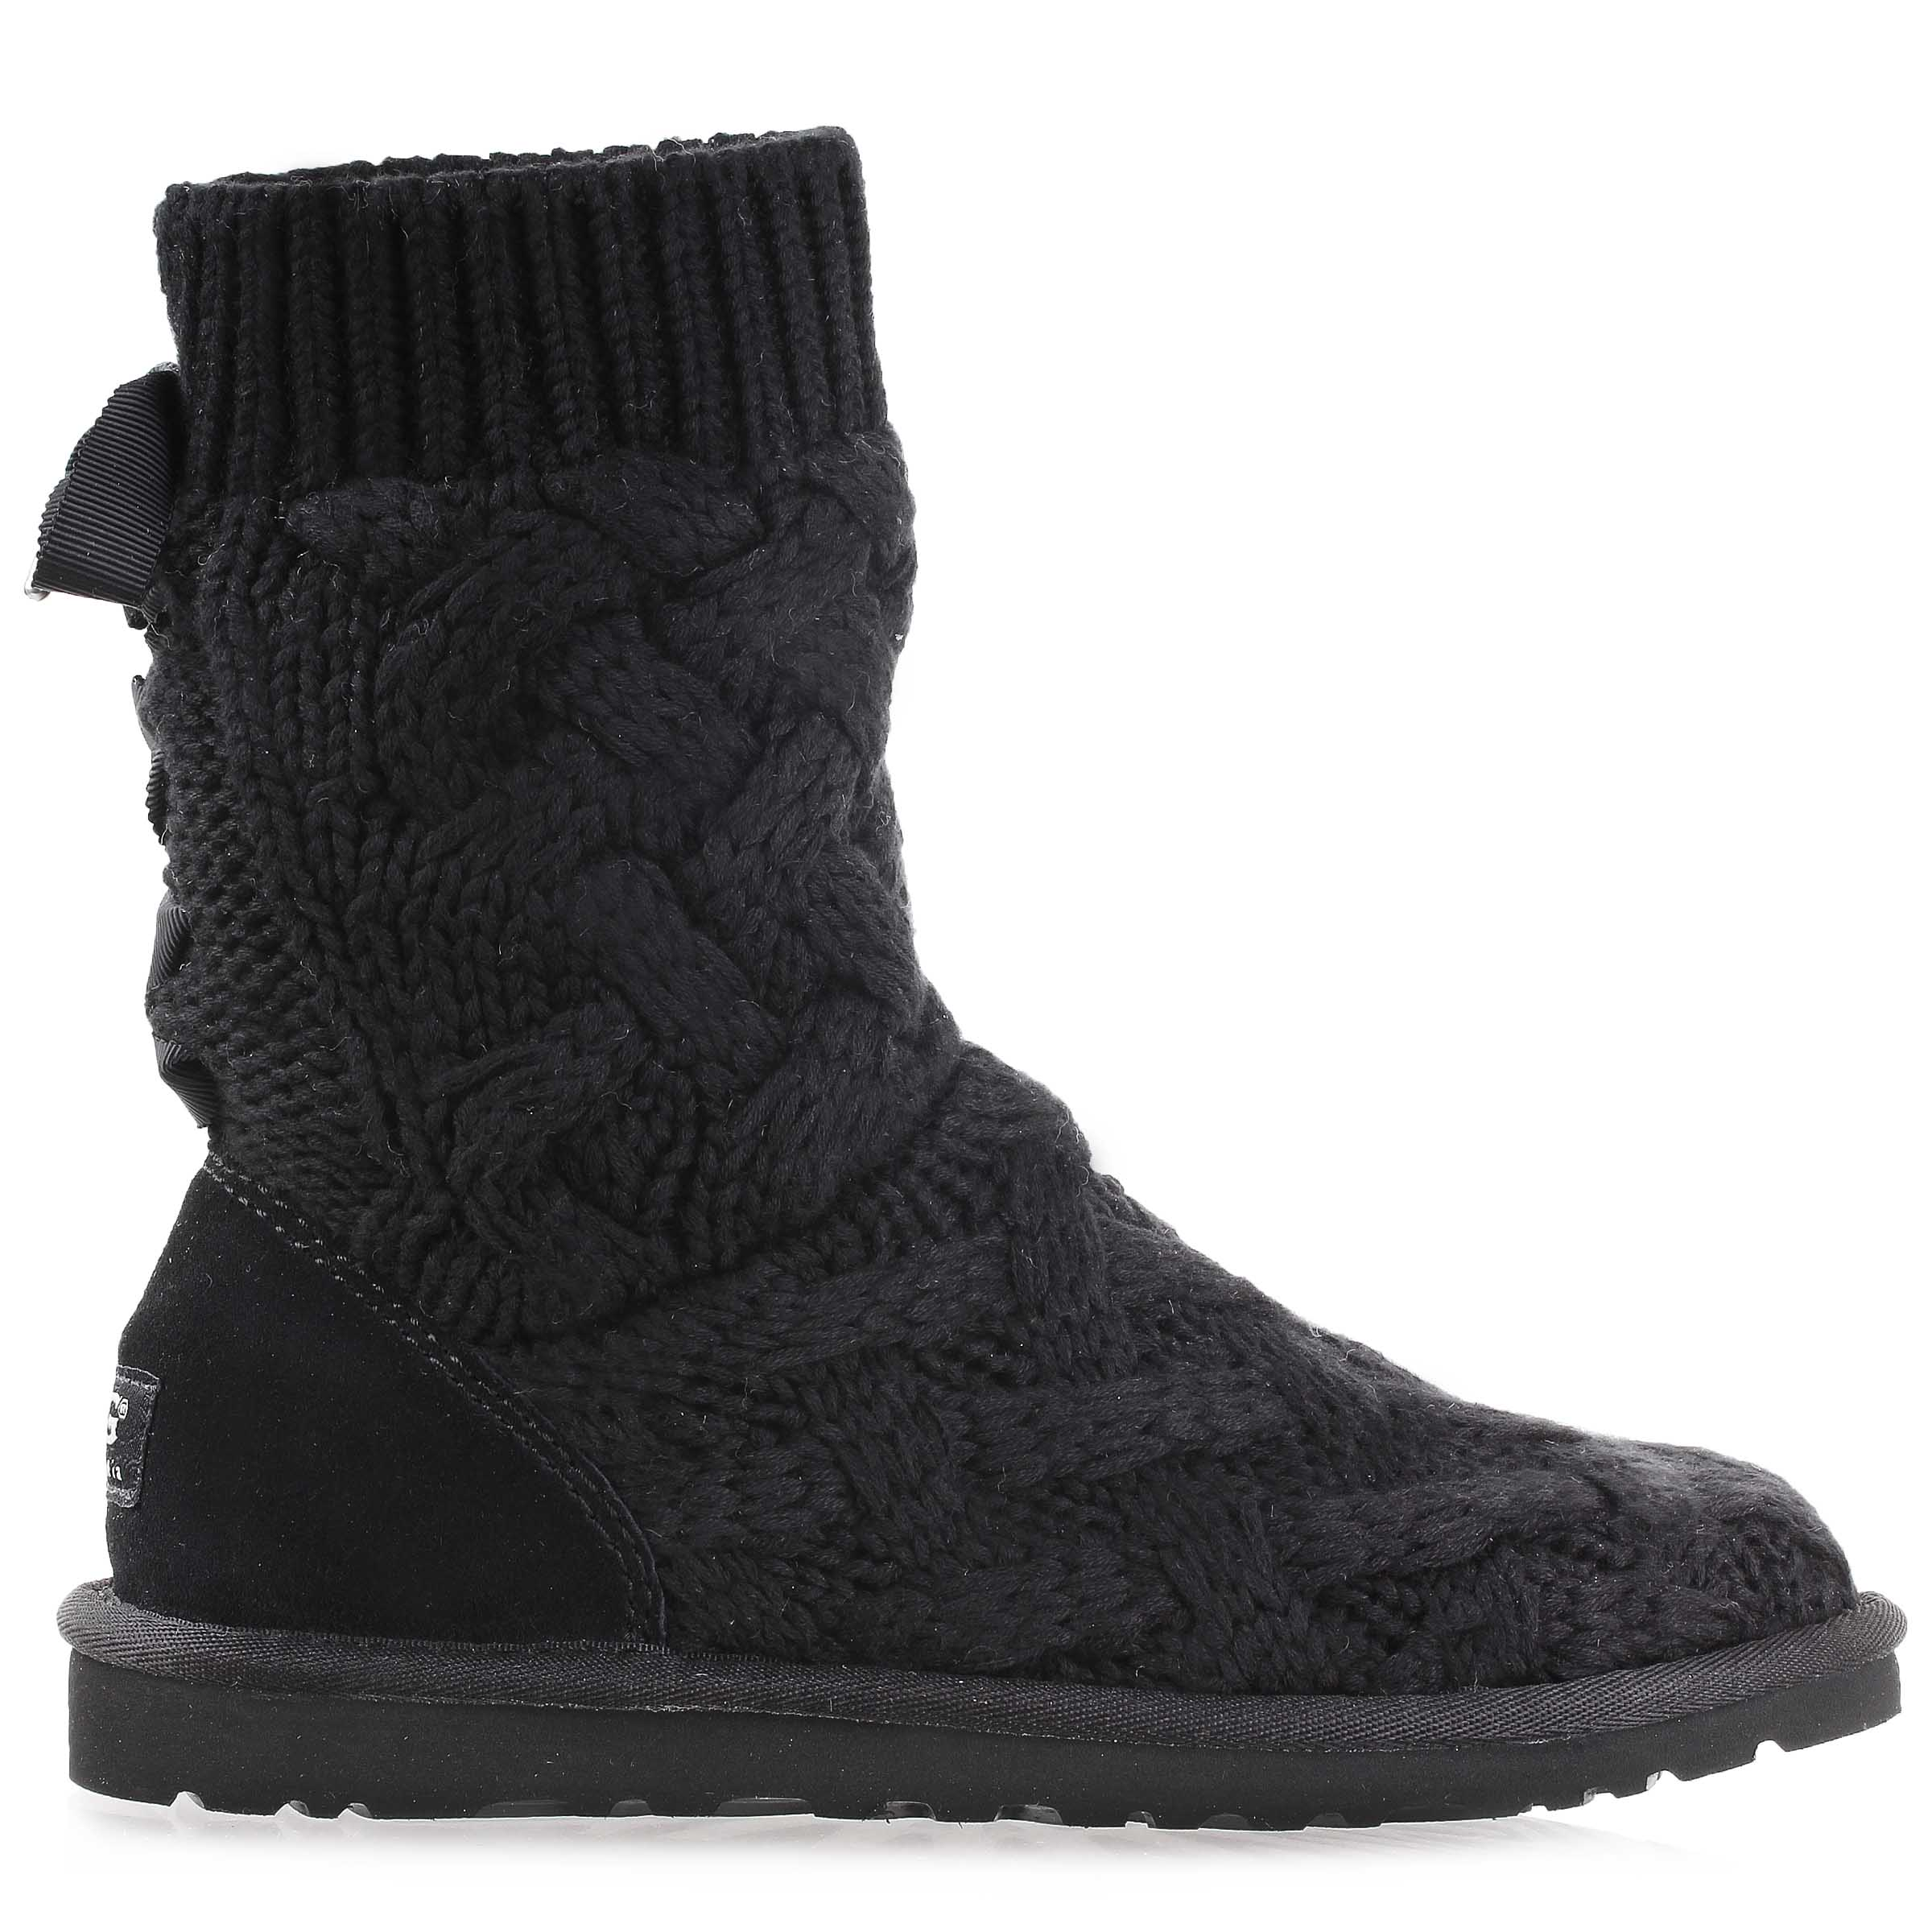 16c5ca98a294 Details about Ugg Australia Womens Isla Knit Boots shoes 1008840W Black